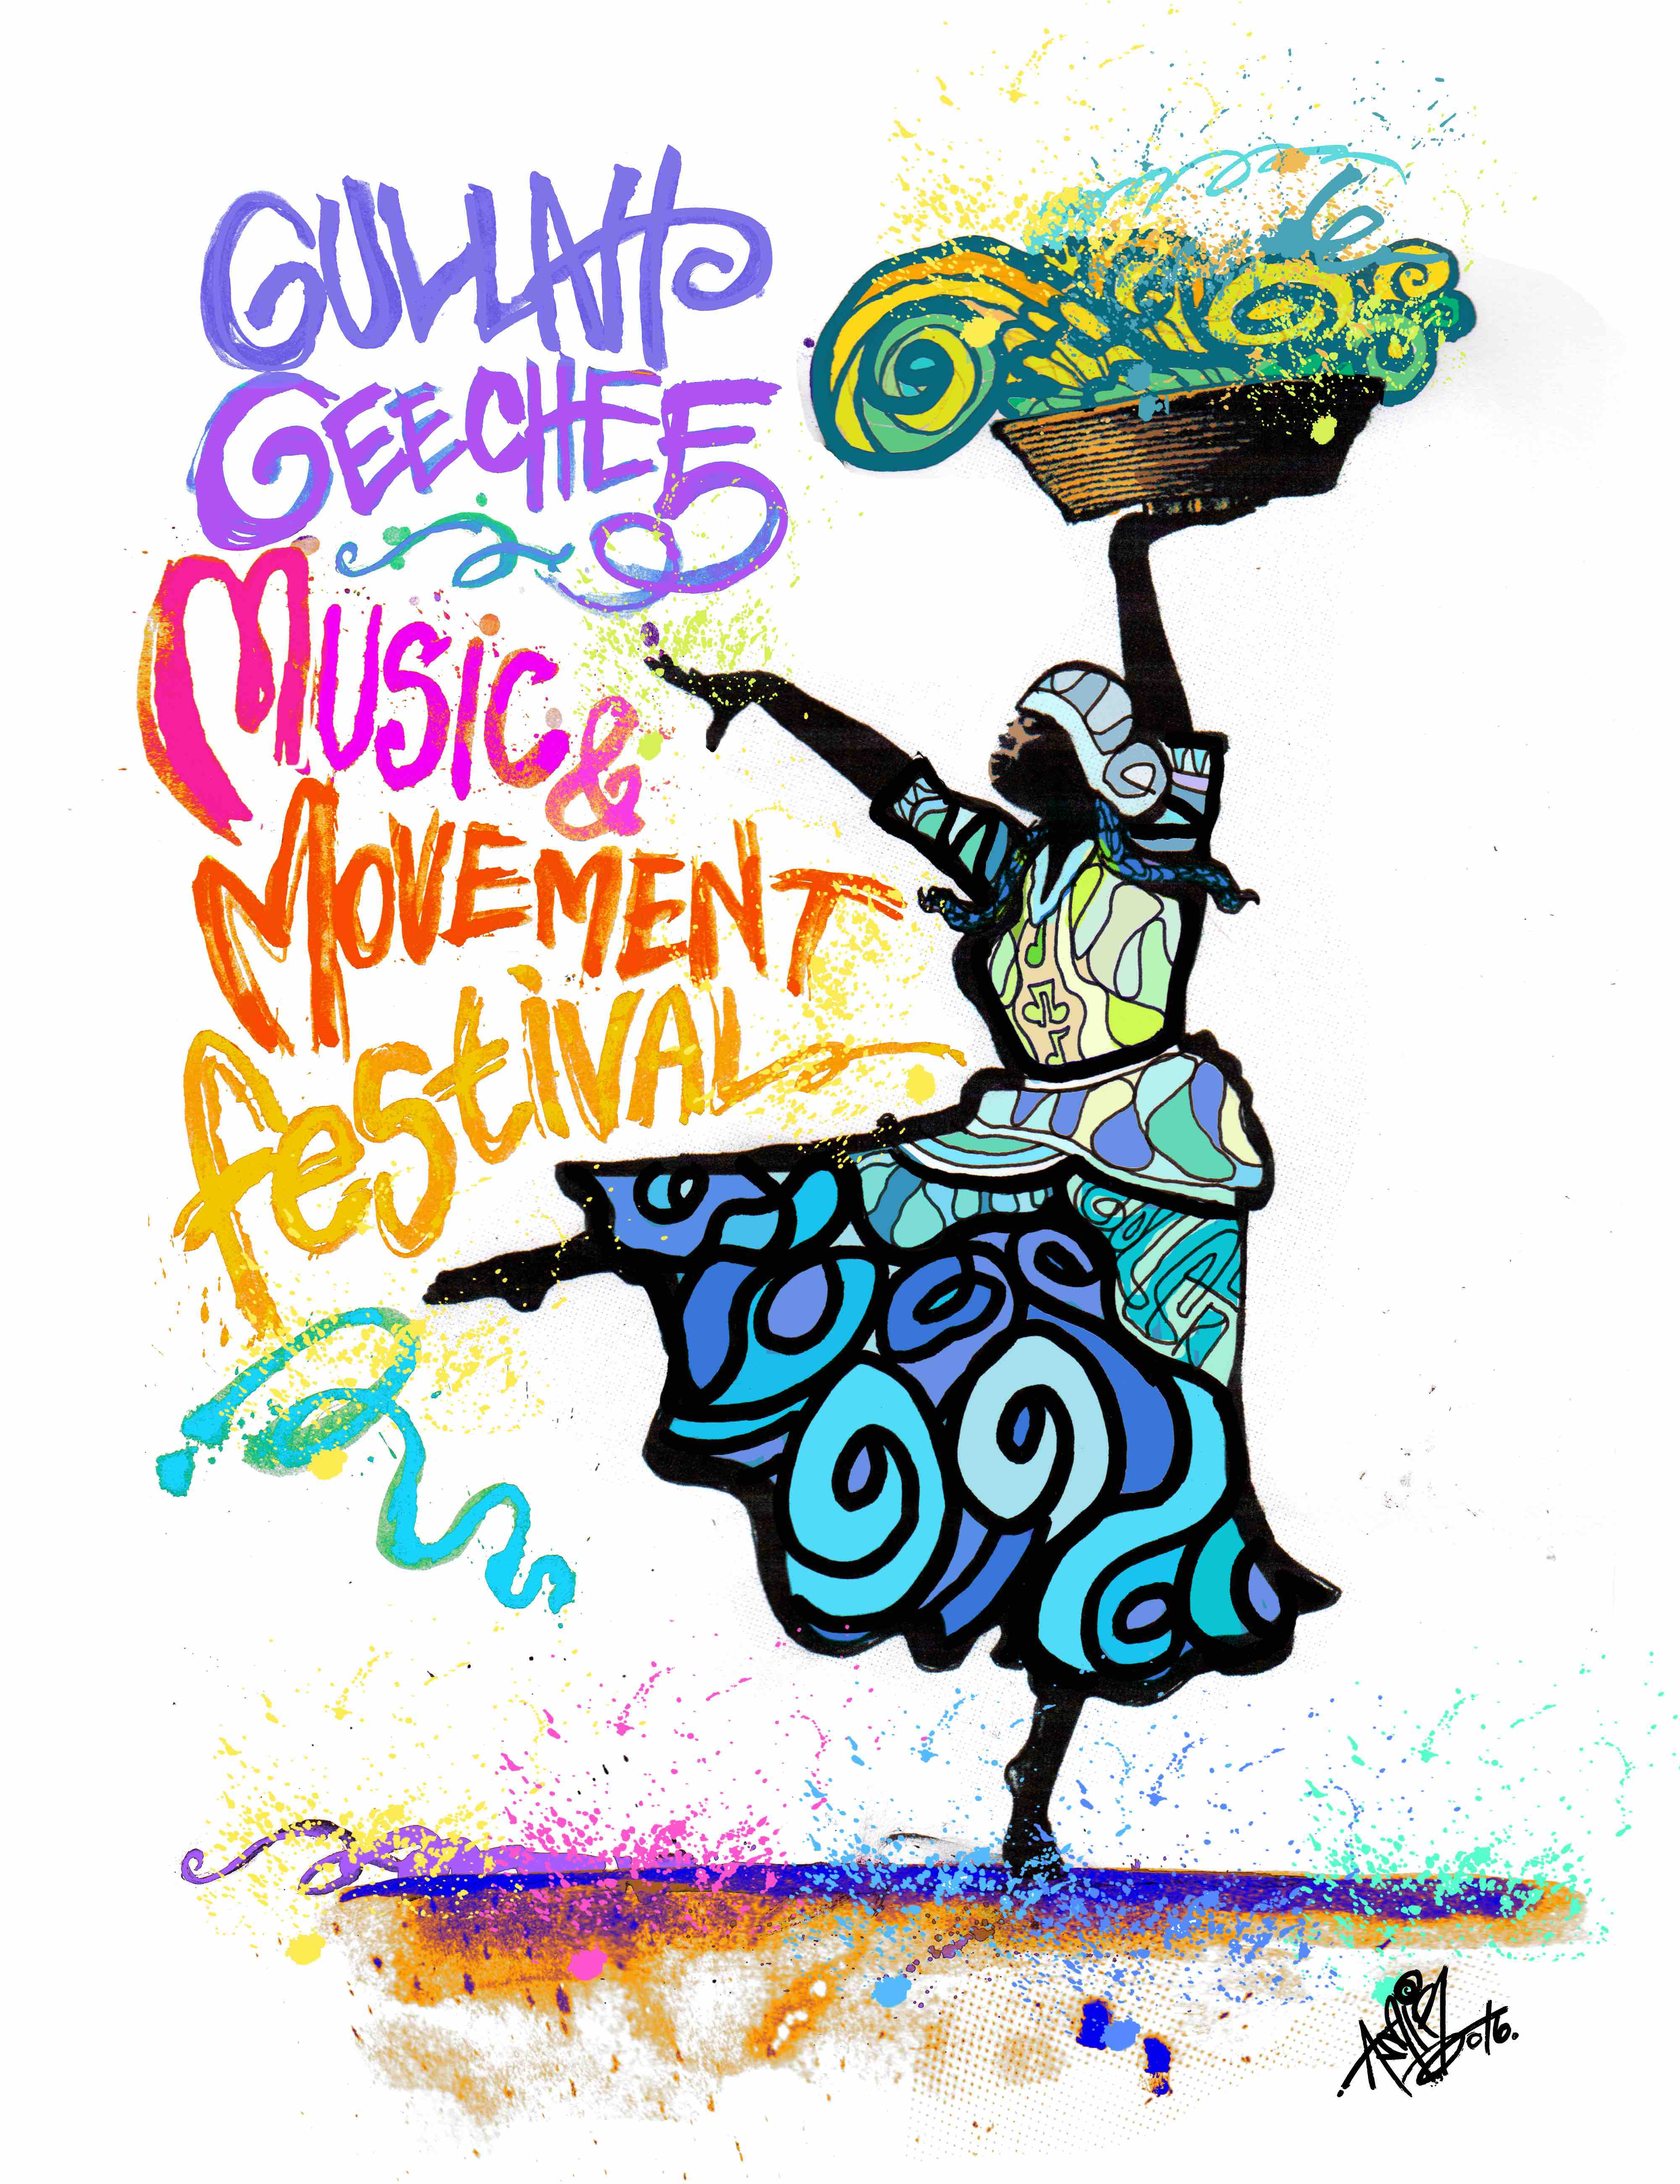 Gullah/Geechee Nation International Music & Movement Festival Logo